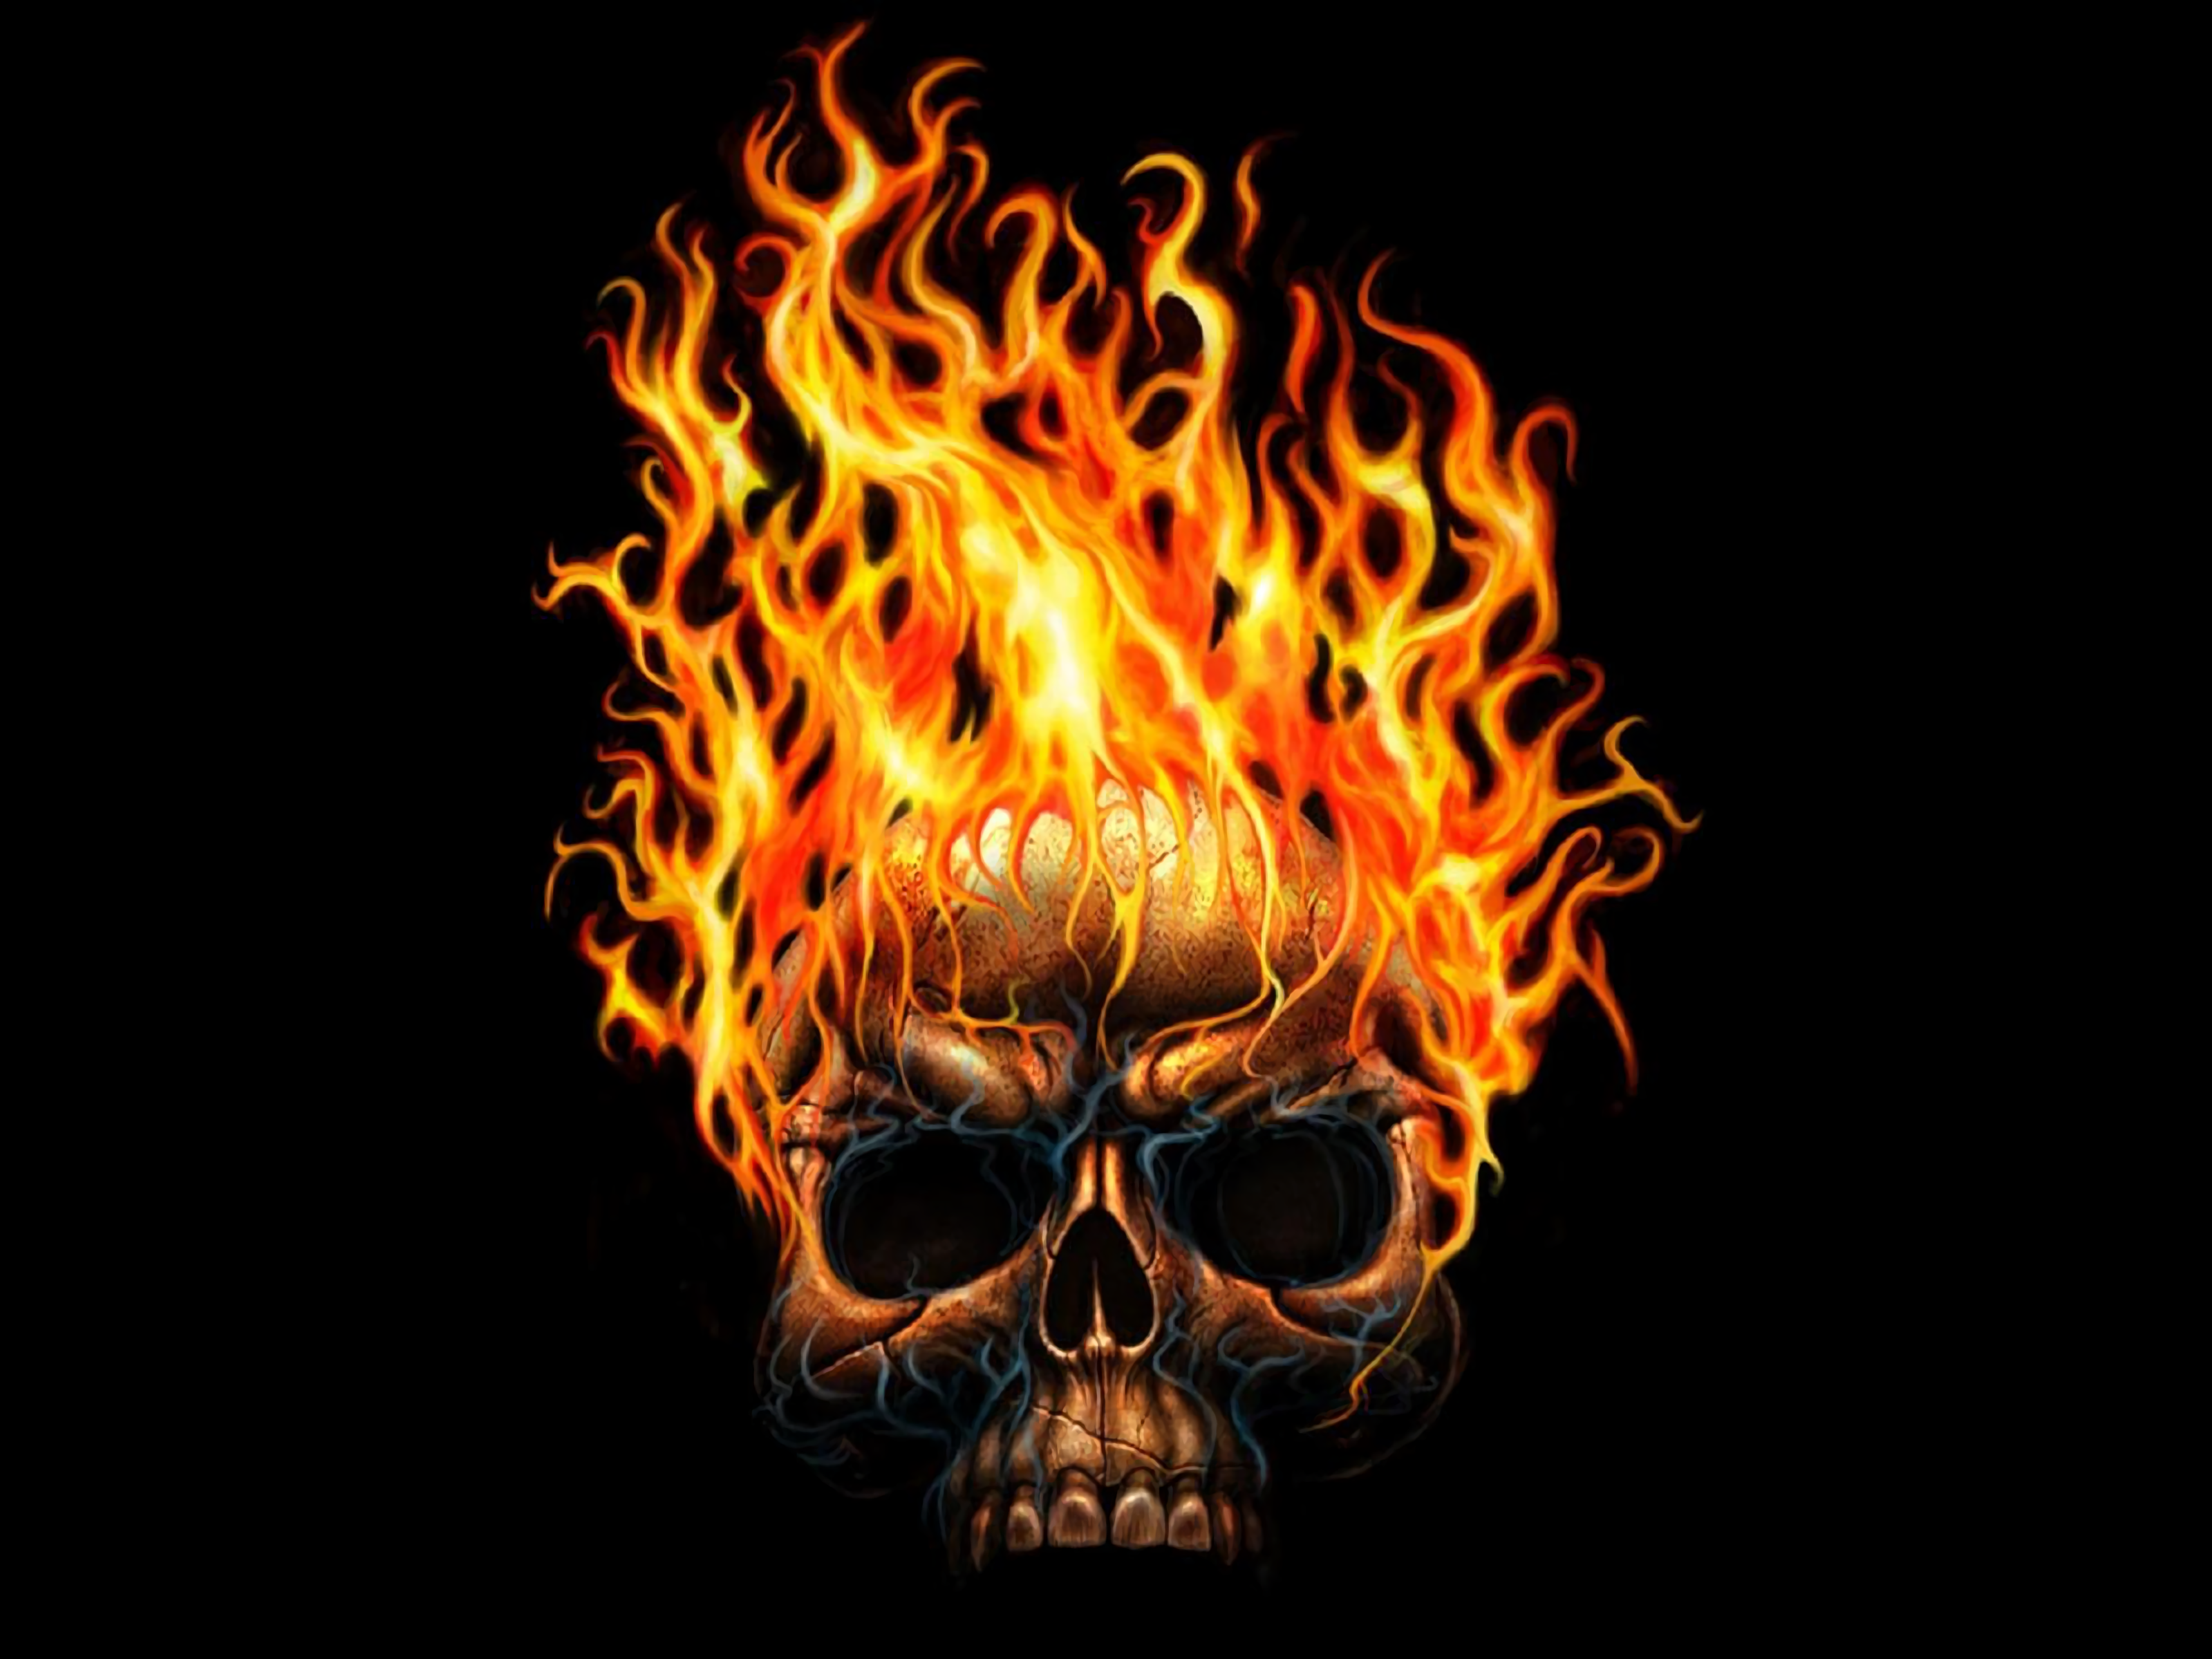 Top Collection of Fire Wallpapers: 4462590 Fire Background 3200x2400 px